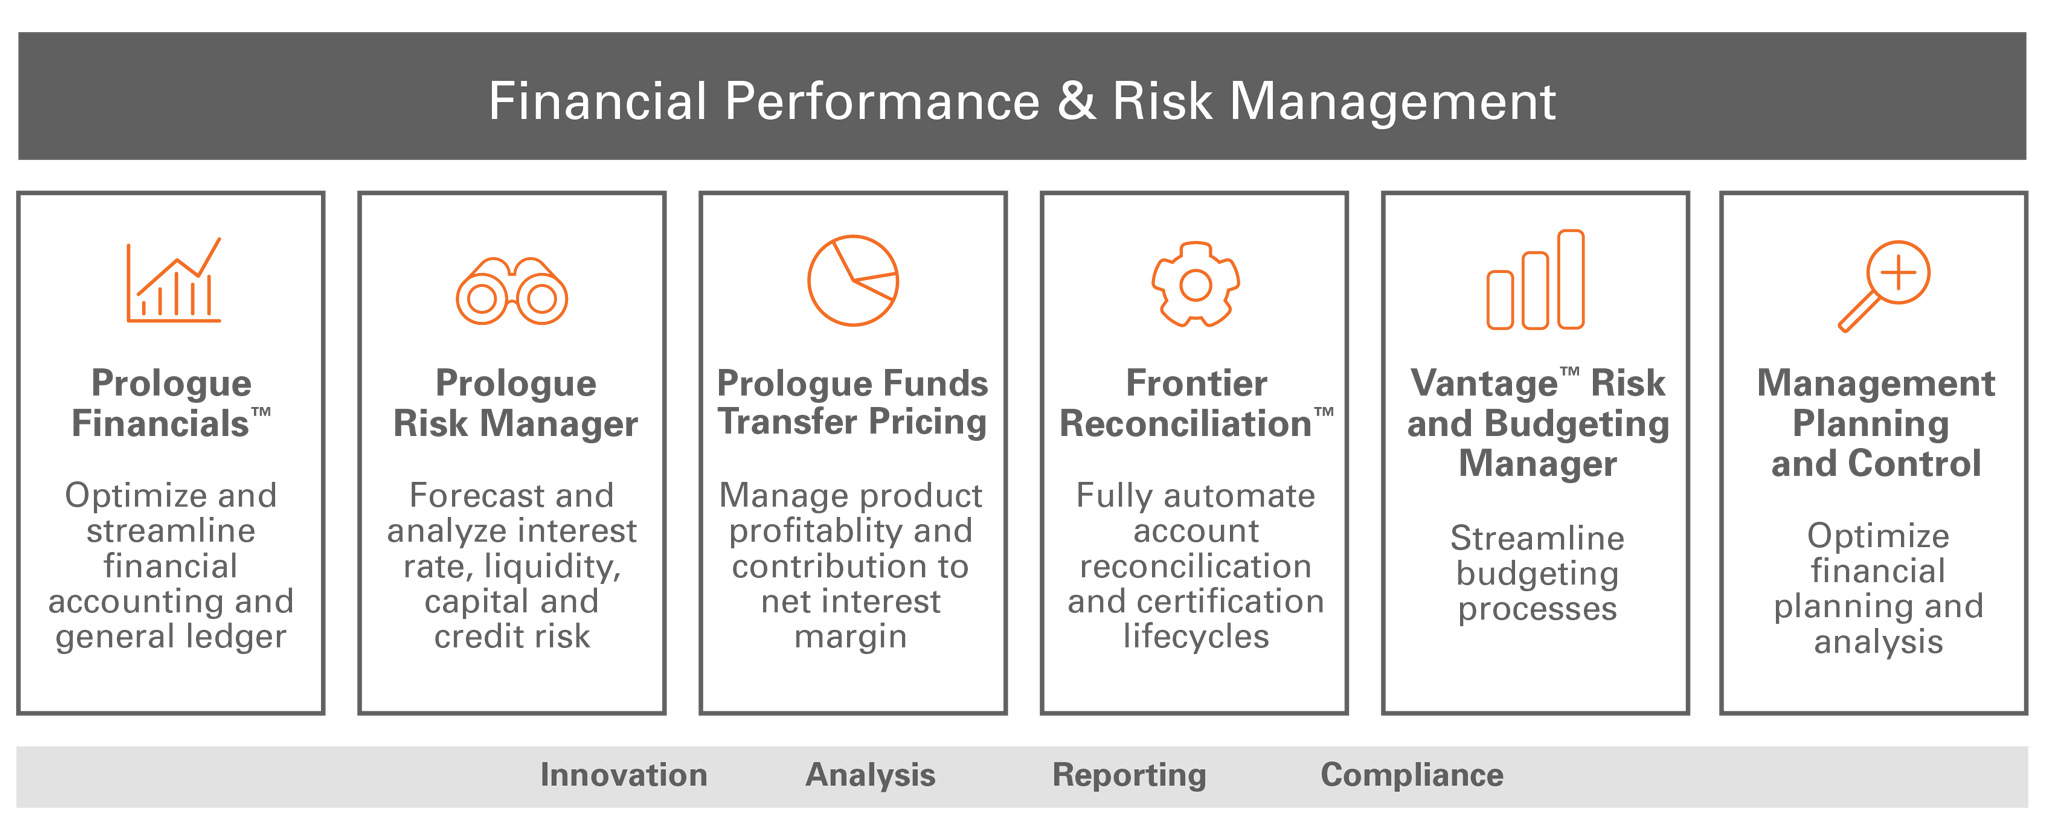 Financial Performance Management Solutions | Fiserv